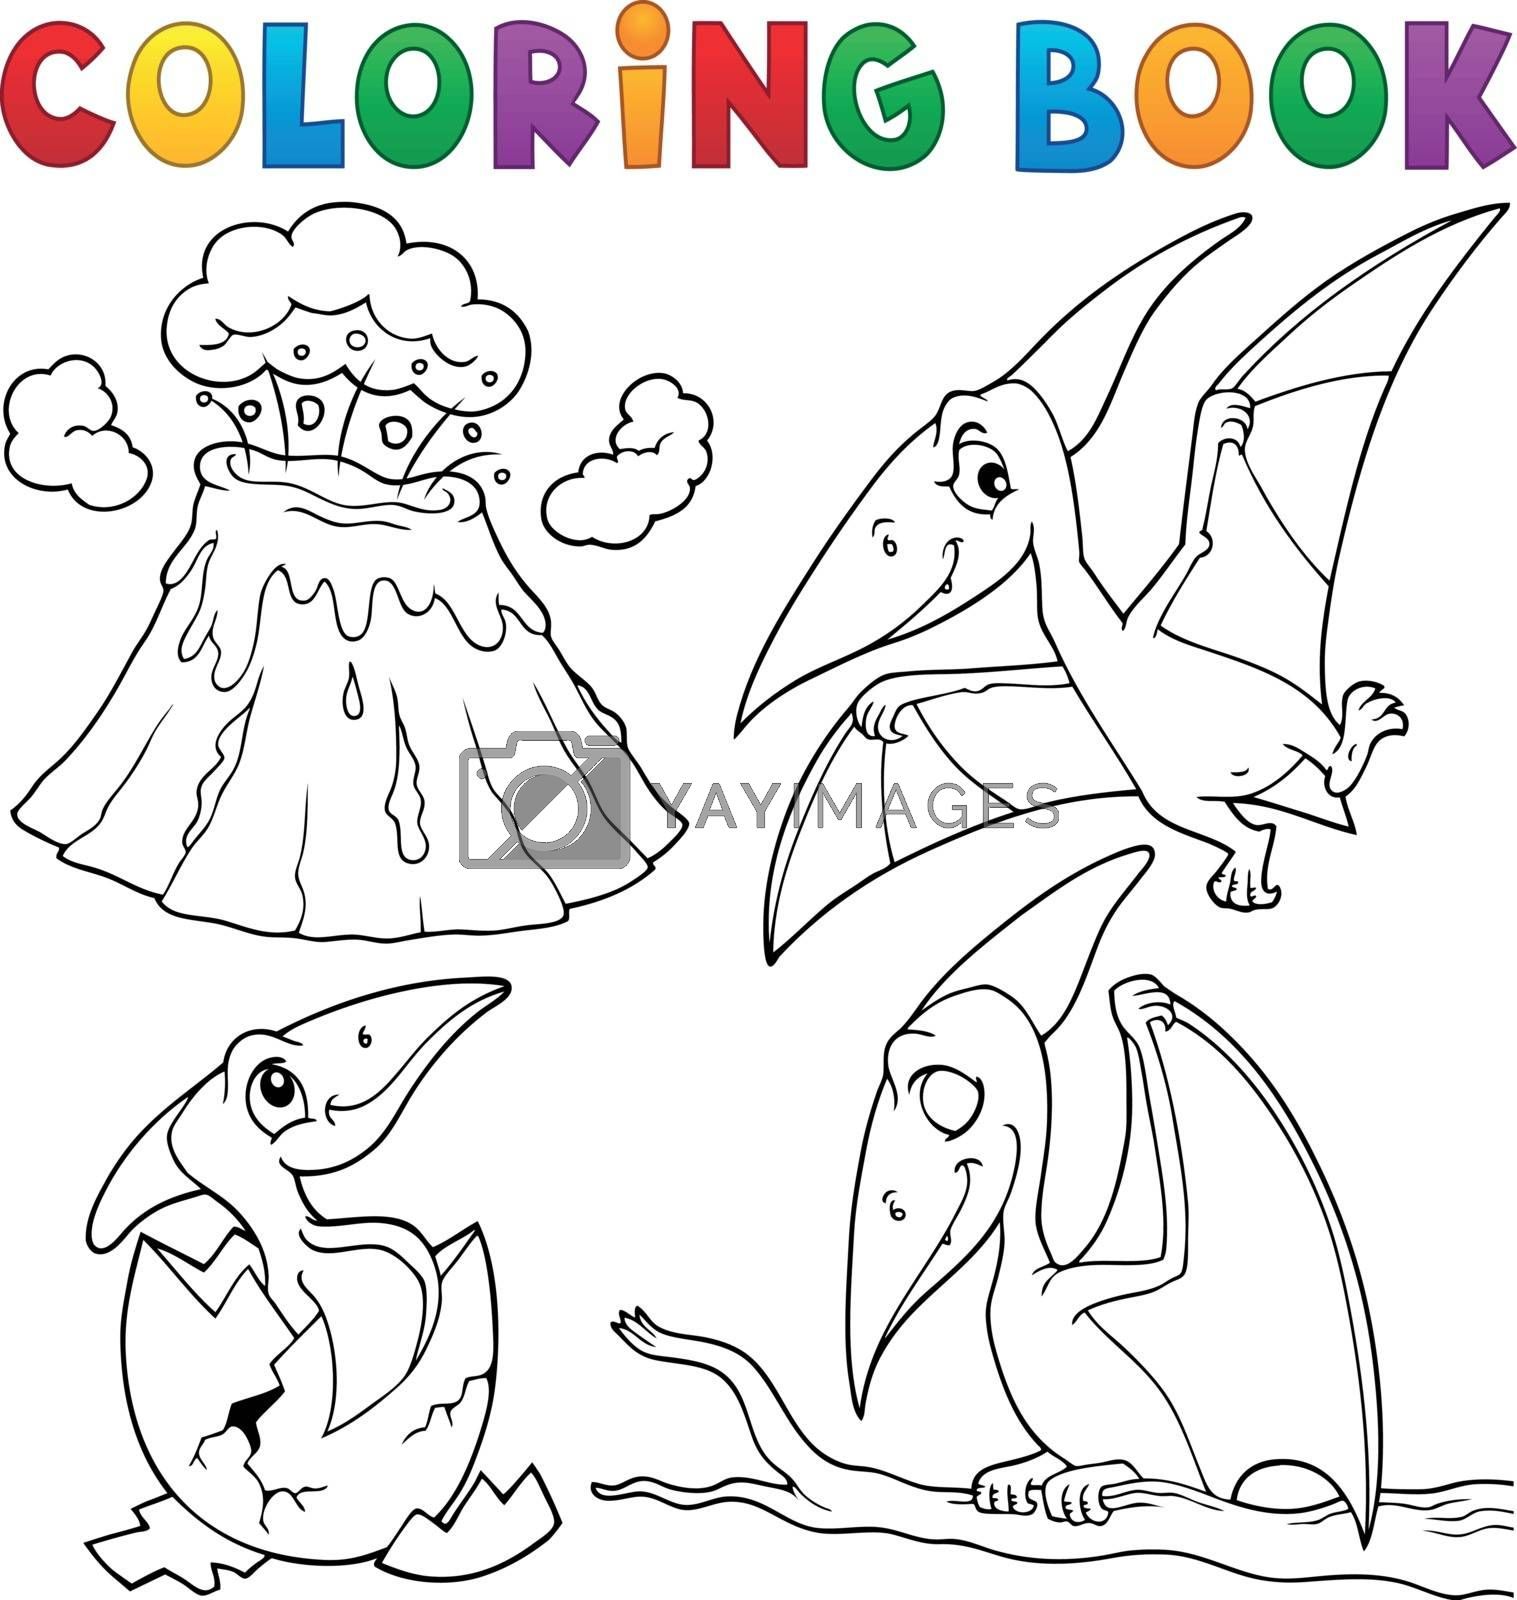 Coloring book pterodactyls theme set 1 - eps10 vector illustration.